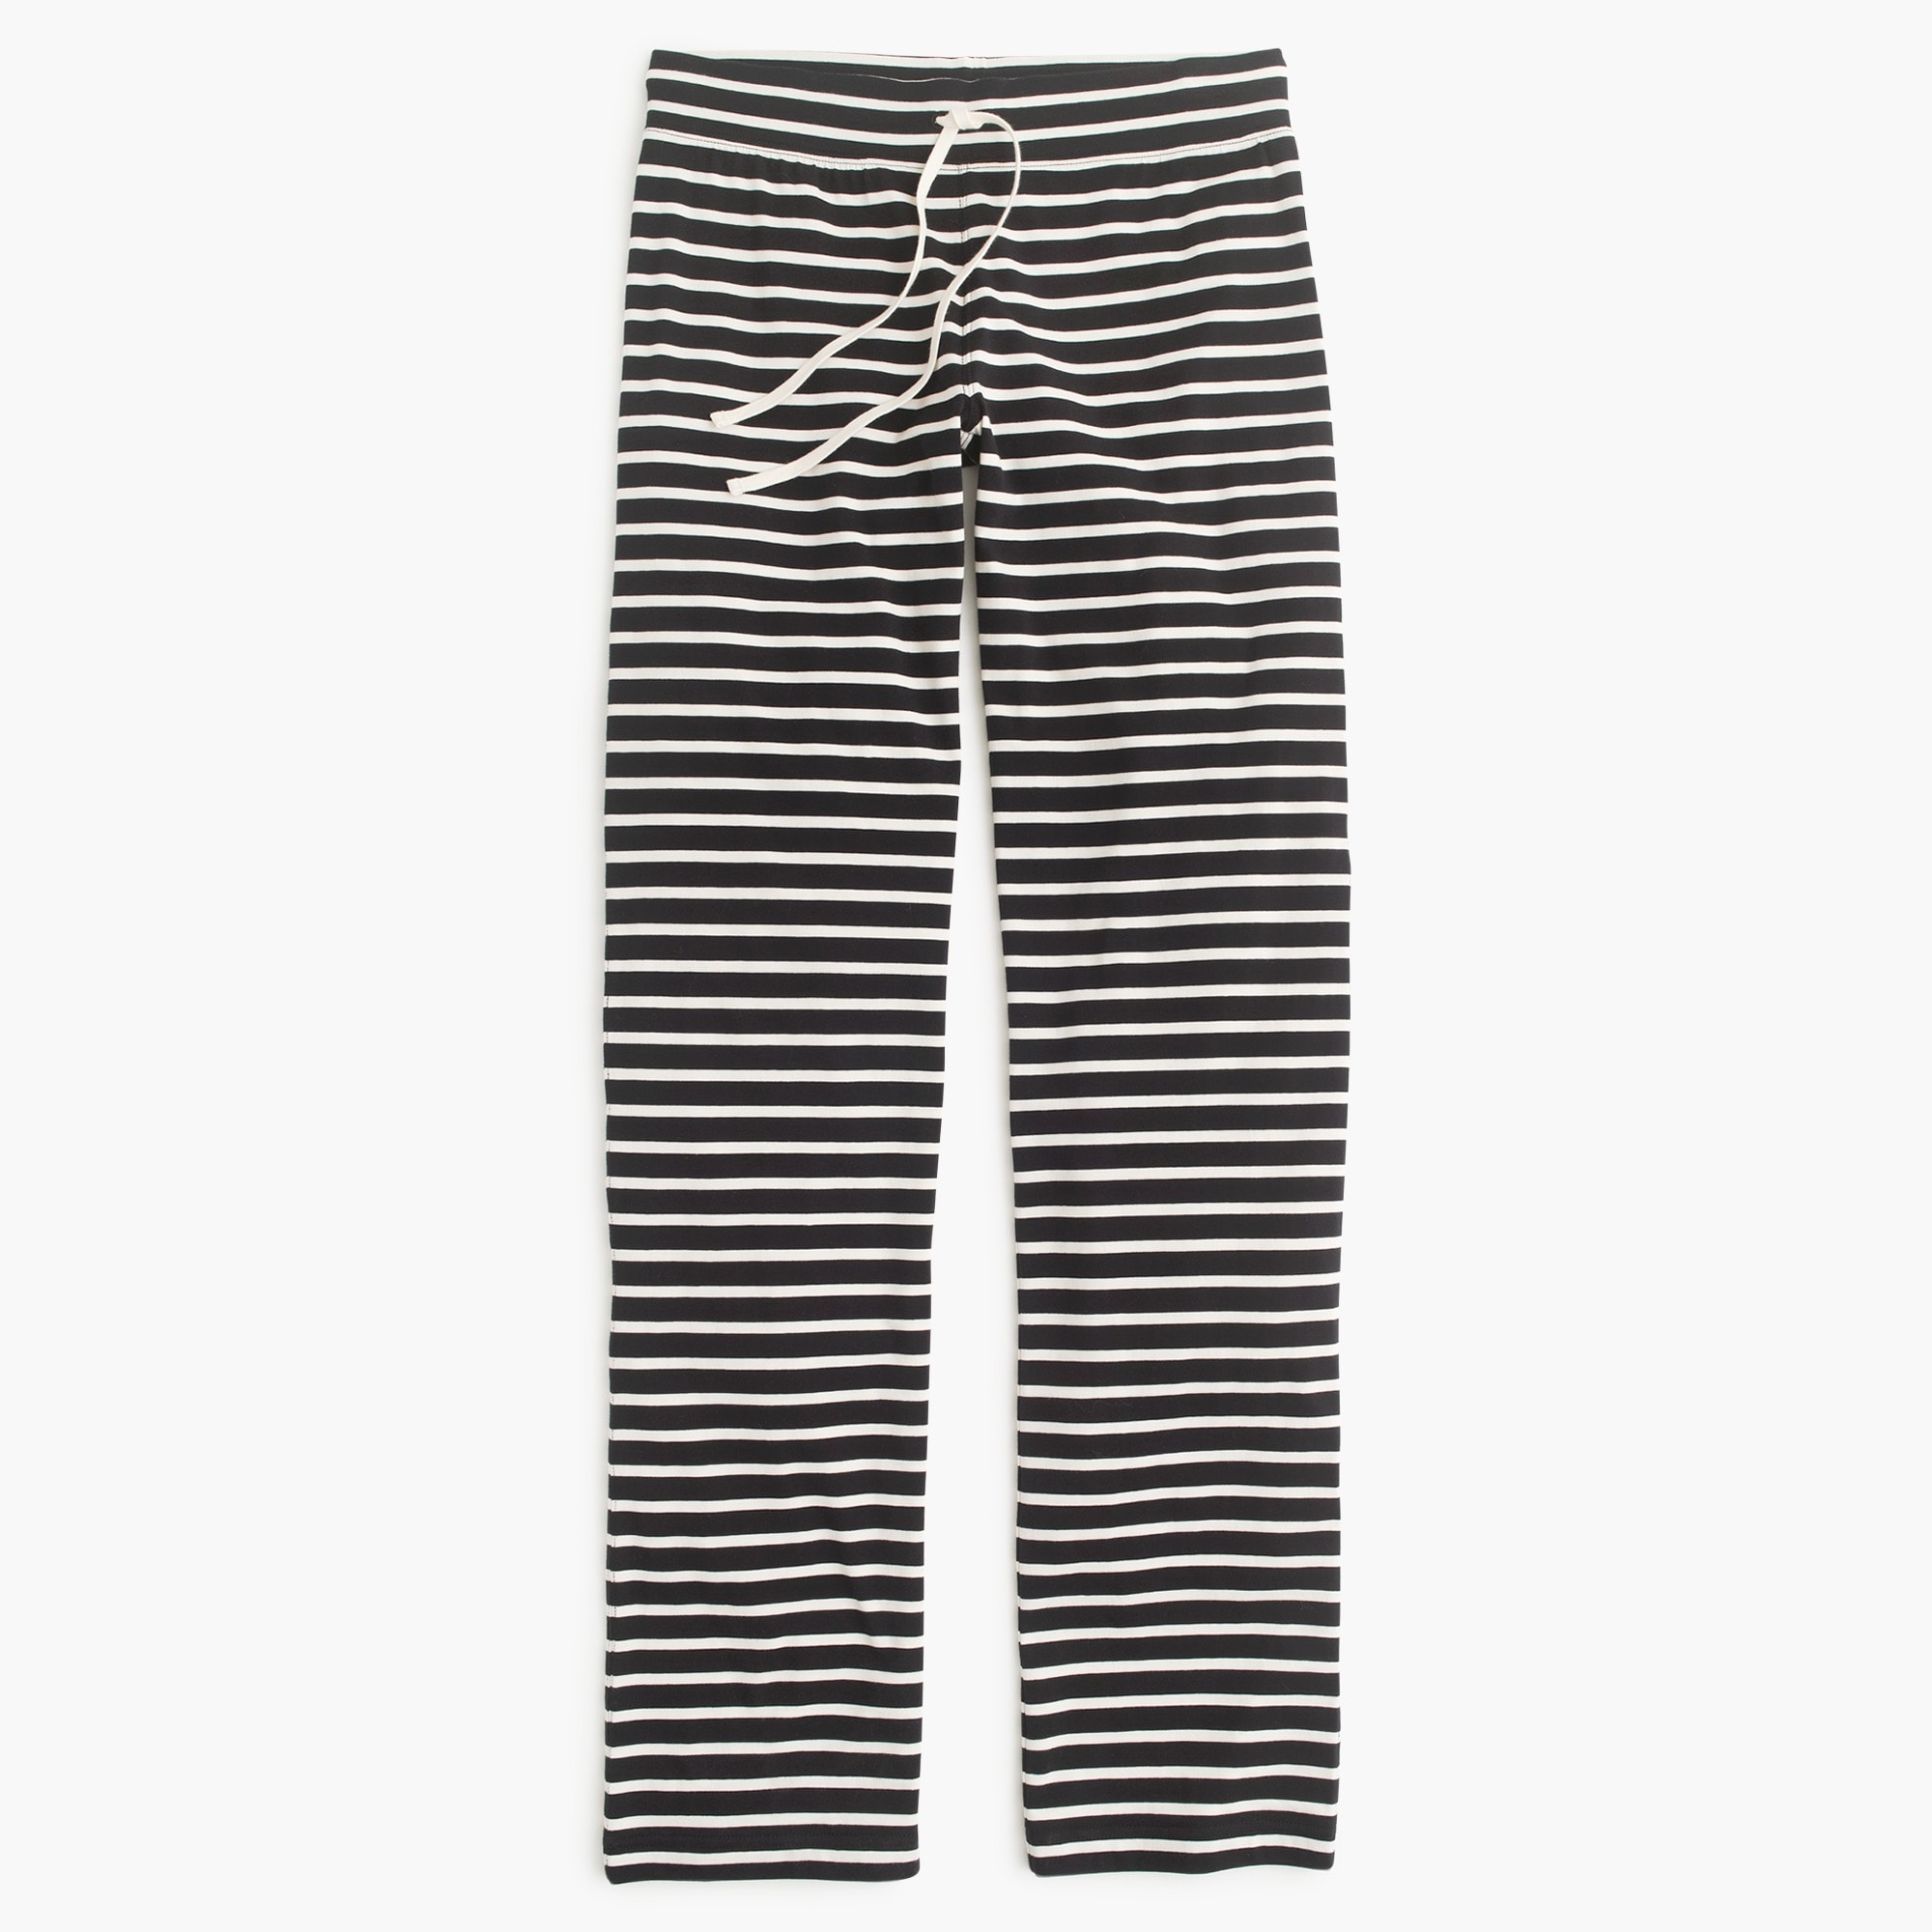 Image 1 for Petite dreamy cotton pant in stripe